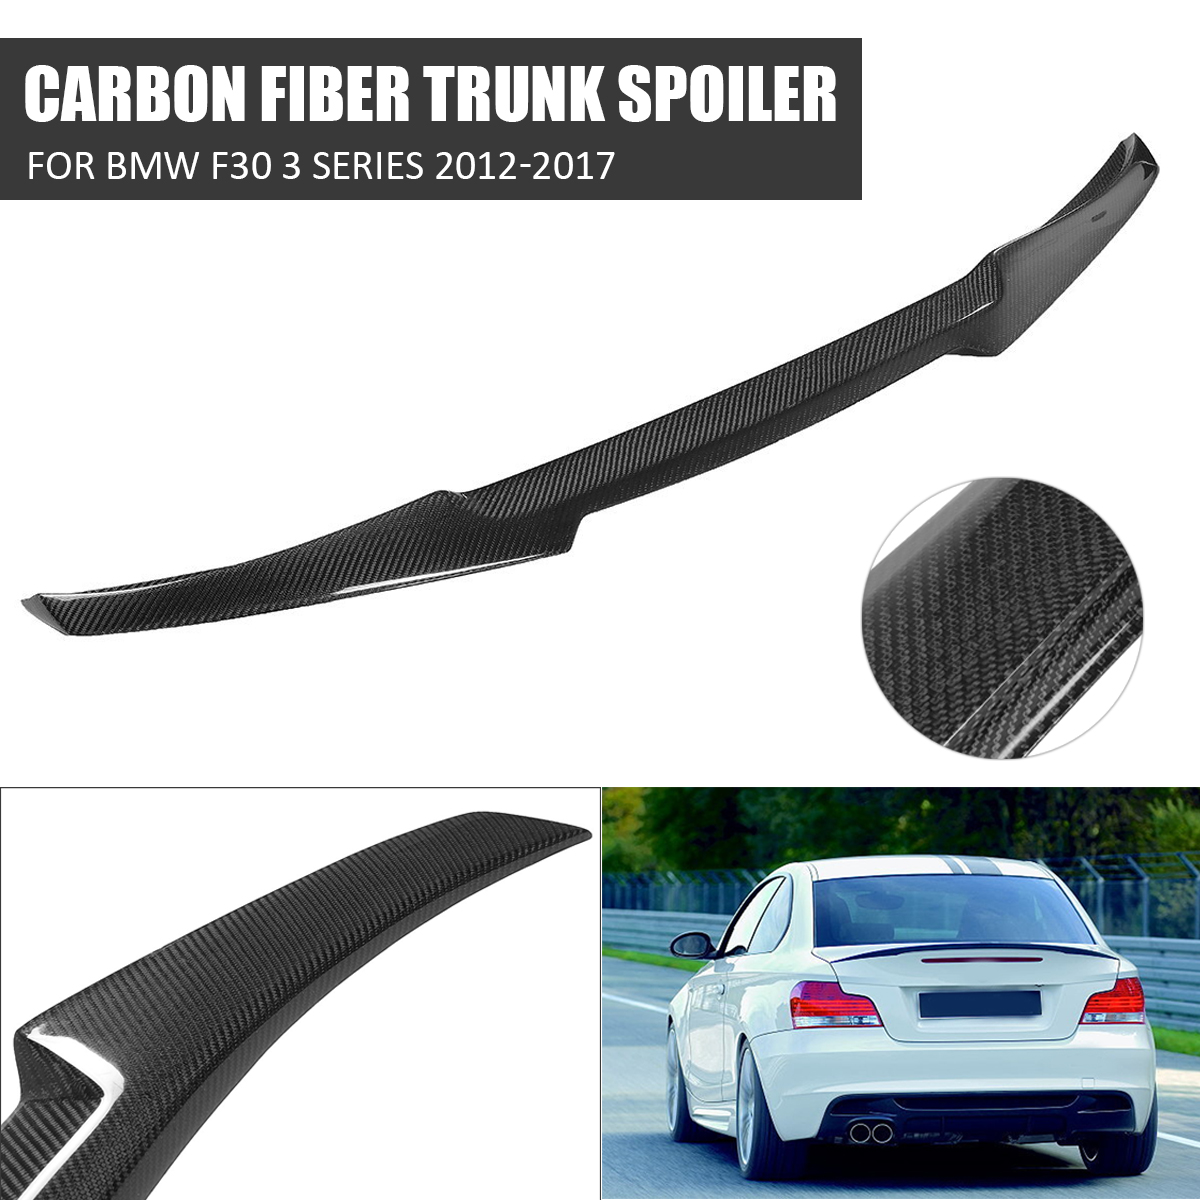 High quality Carbon Fiber M4 LStyle Trunk Rear Wing Spoiler For 2012-17 For BMW F30 3 Series 335i 328i 2012 - 2017 m performance style carbon fiber rear trunk wing spoiler for bmw 3 series f30 2012 2018 318i 320i 328i 330i 335i